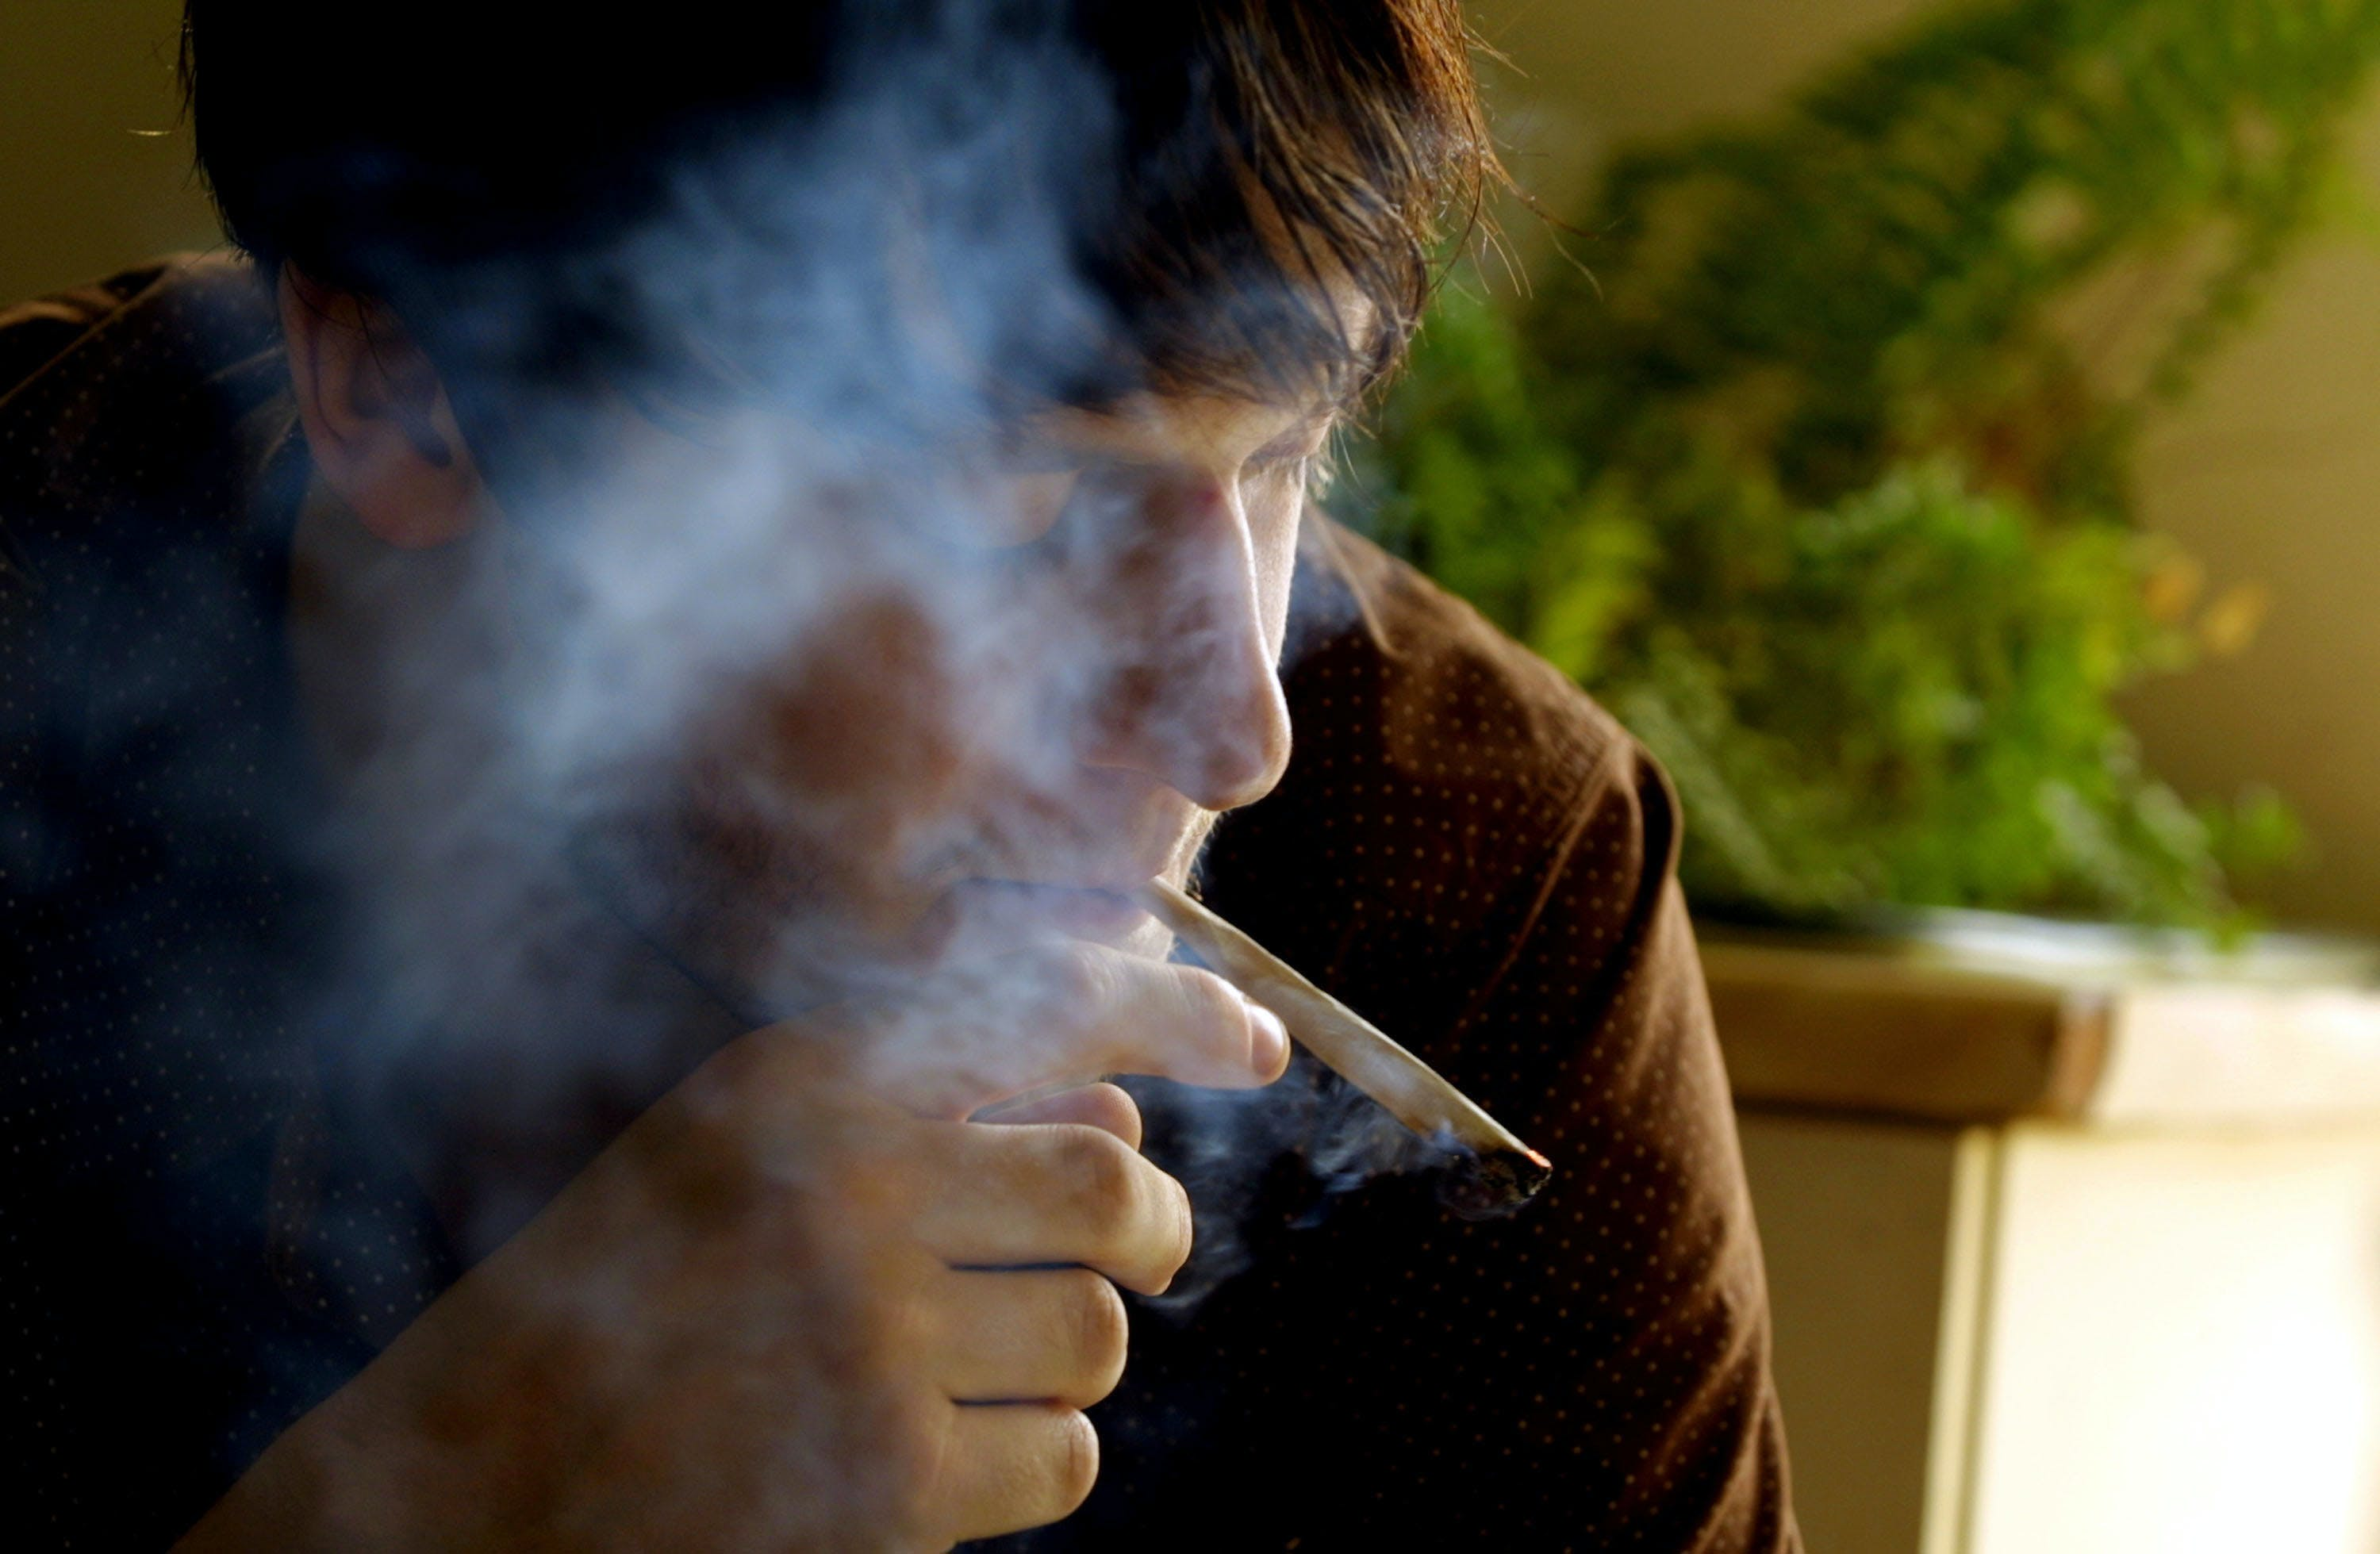 Life Insurance For Weed Smokers Is About To get 5 Times More Expensive